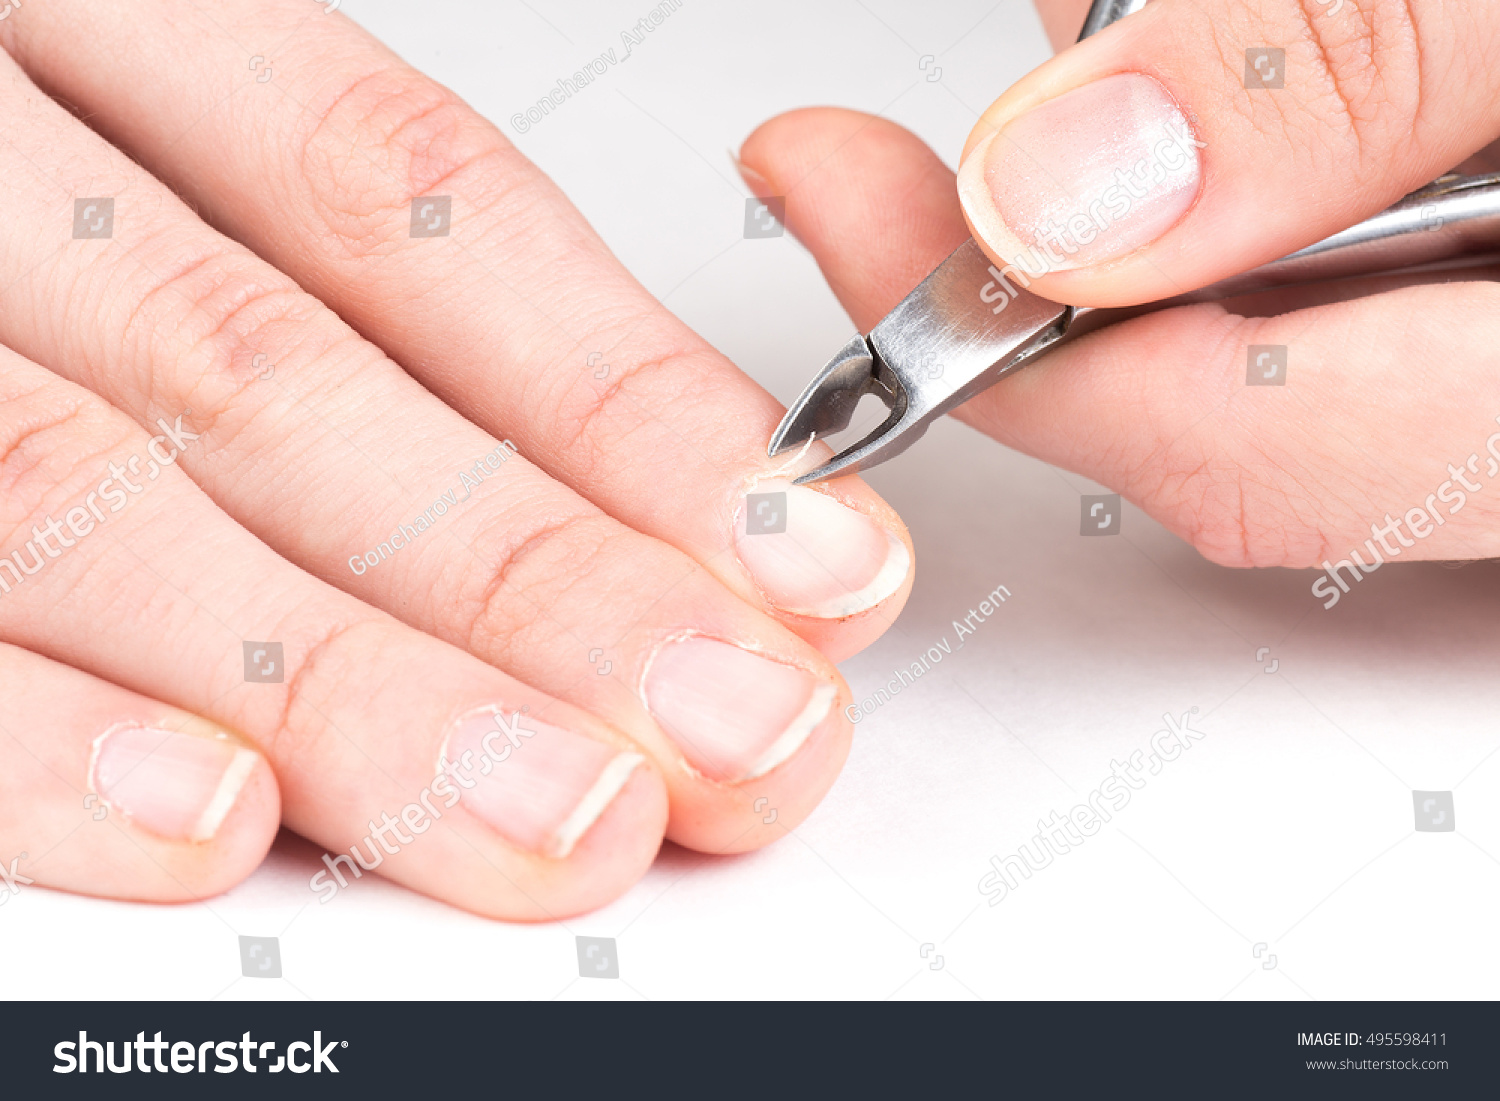 Master Manicure Cuts Off Cuticle Client Stock Photo (Royalty Free ...